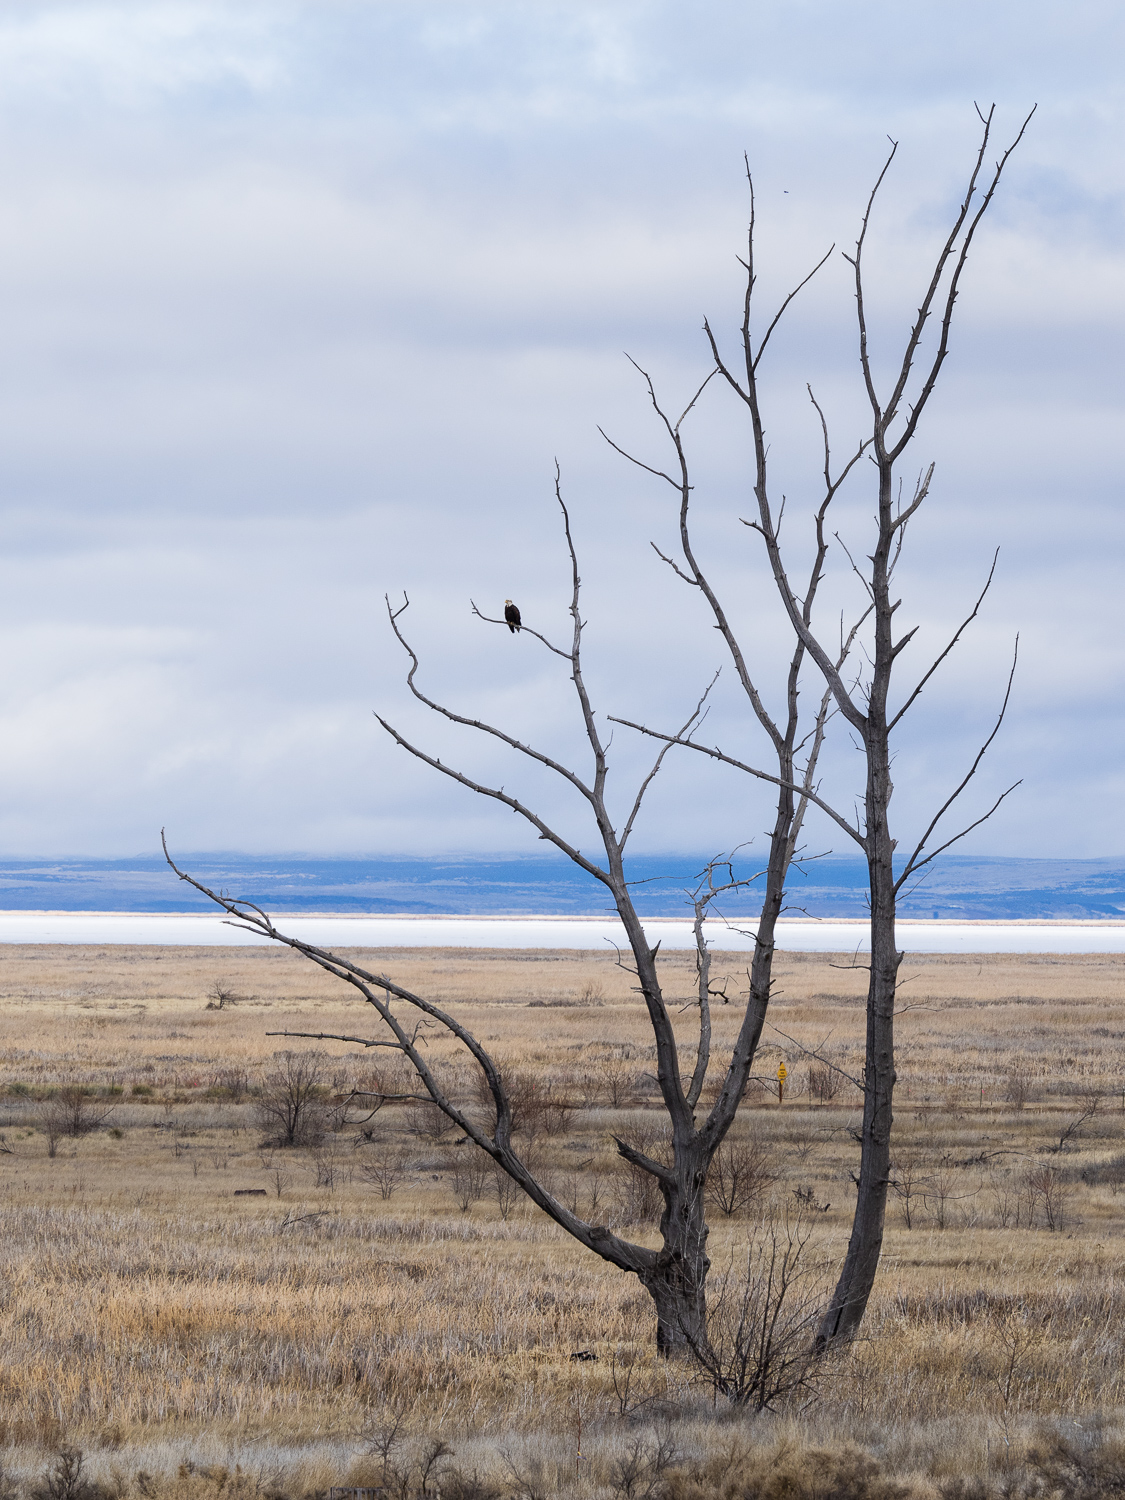 View towards Malheur Lake with bald eagle in tree.